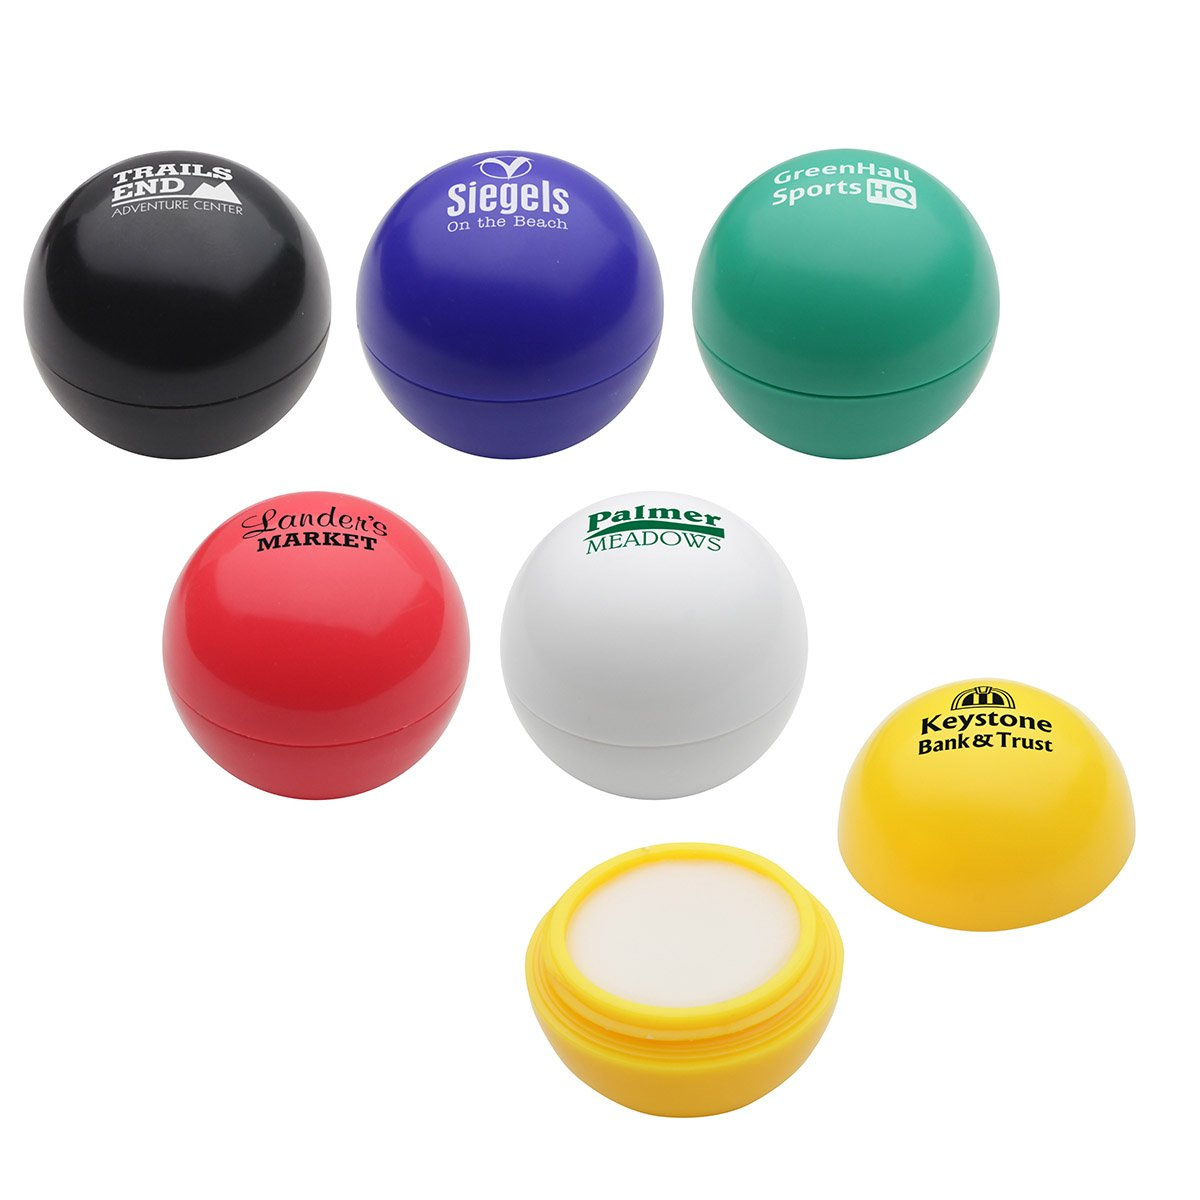 150 Personalized Well-Rounded Lip Balm With Your Company Logo or Message